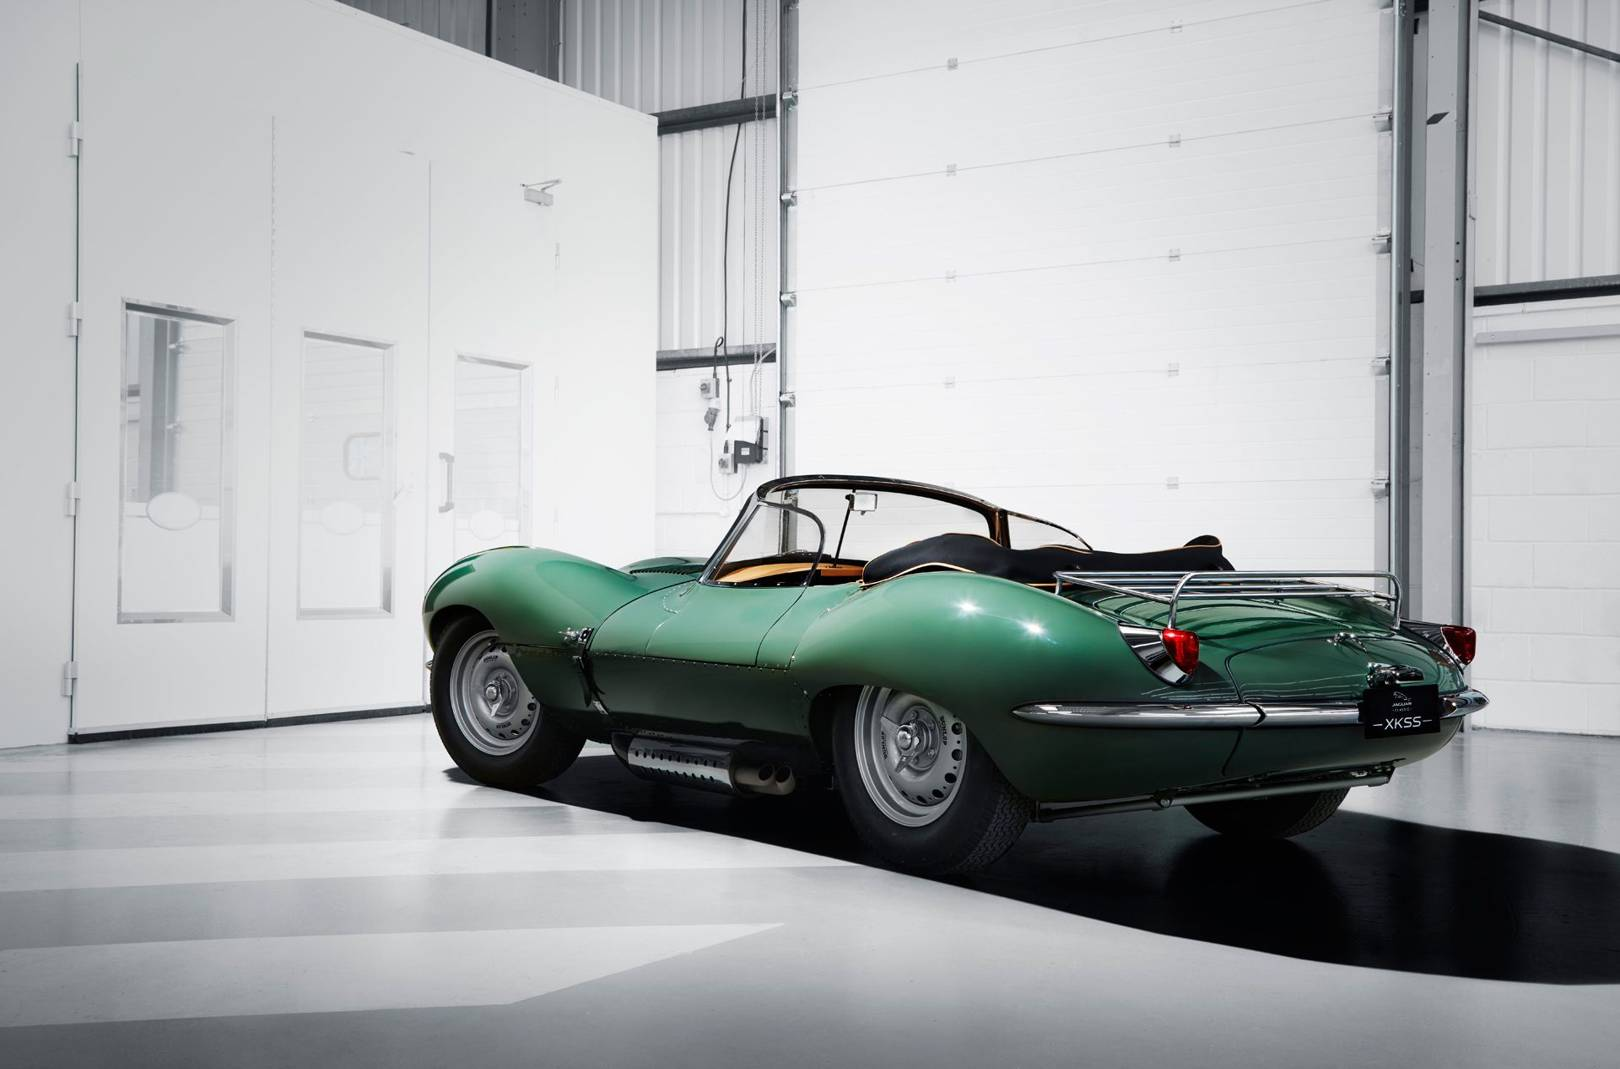 Jaguar Xkss Jag Just Launched The Most Incredible New Old Car 1950s Cars British Gq